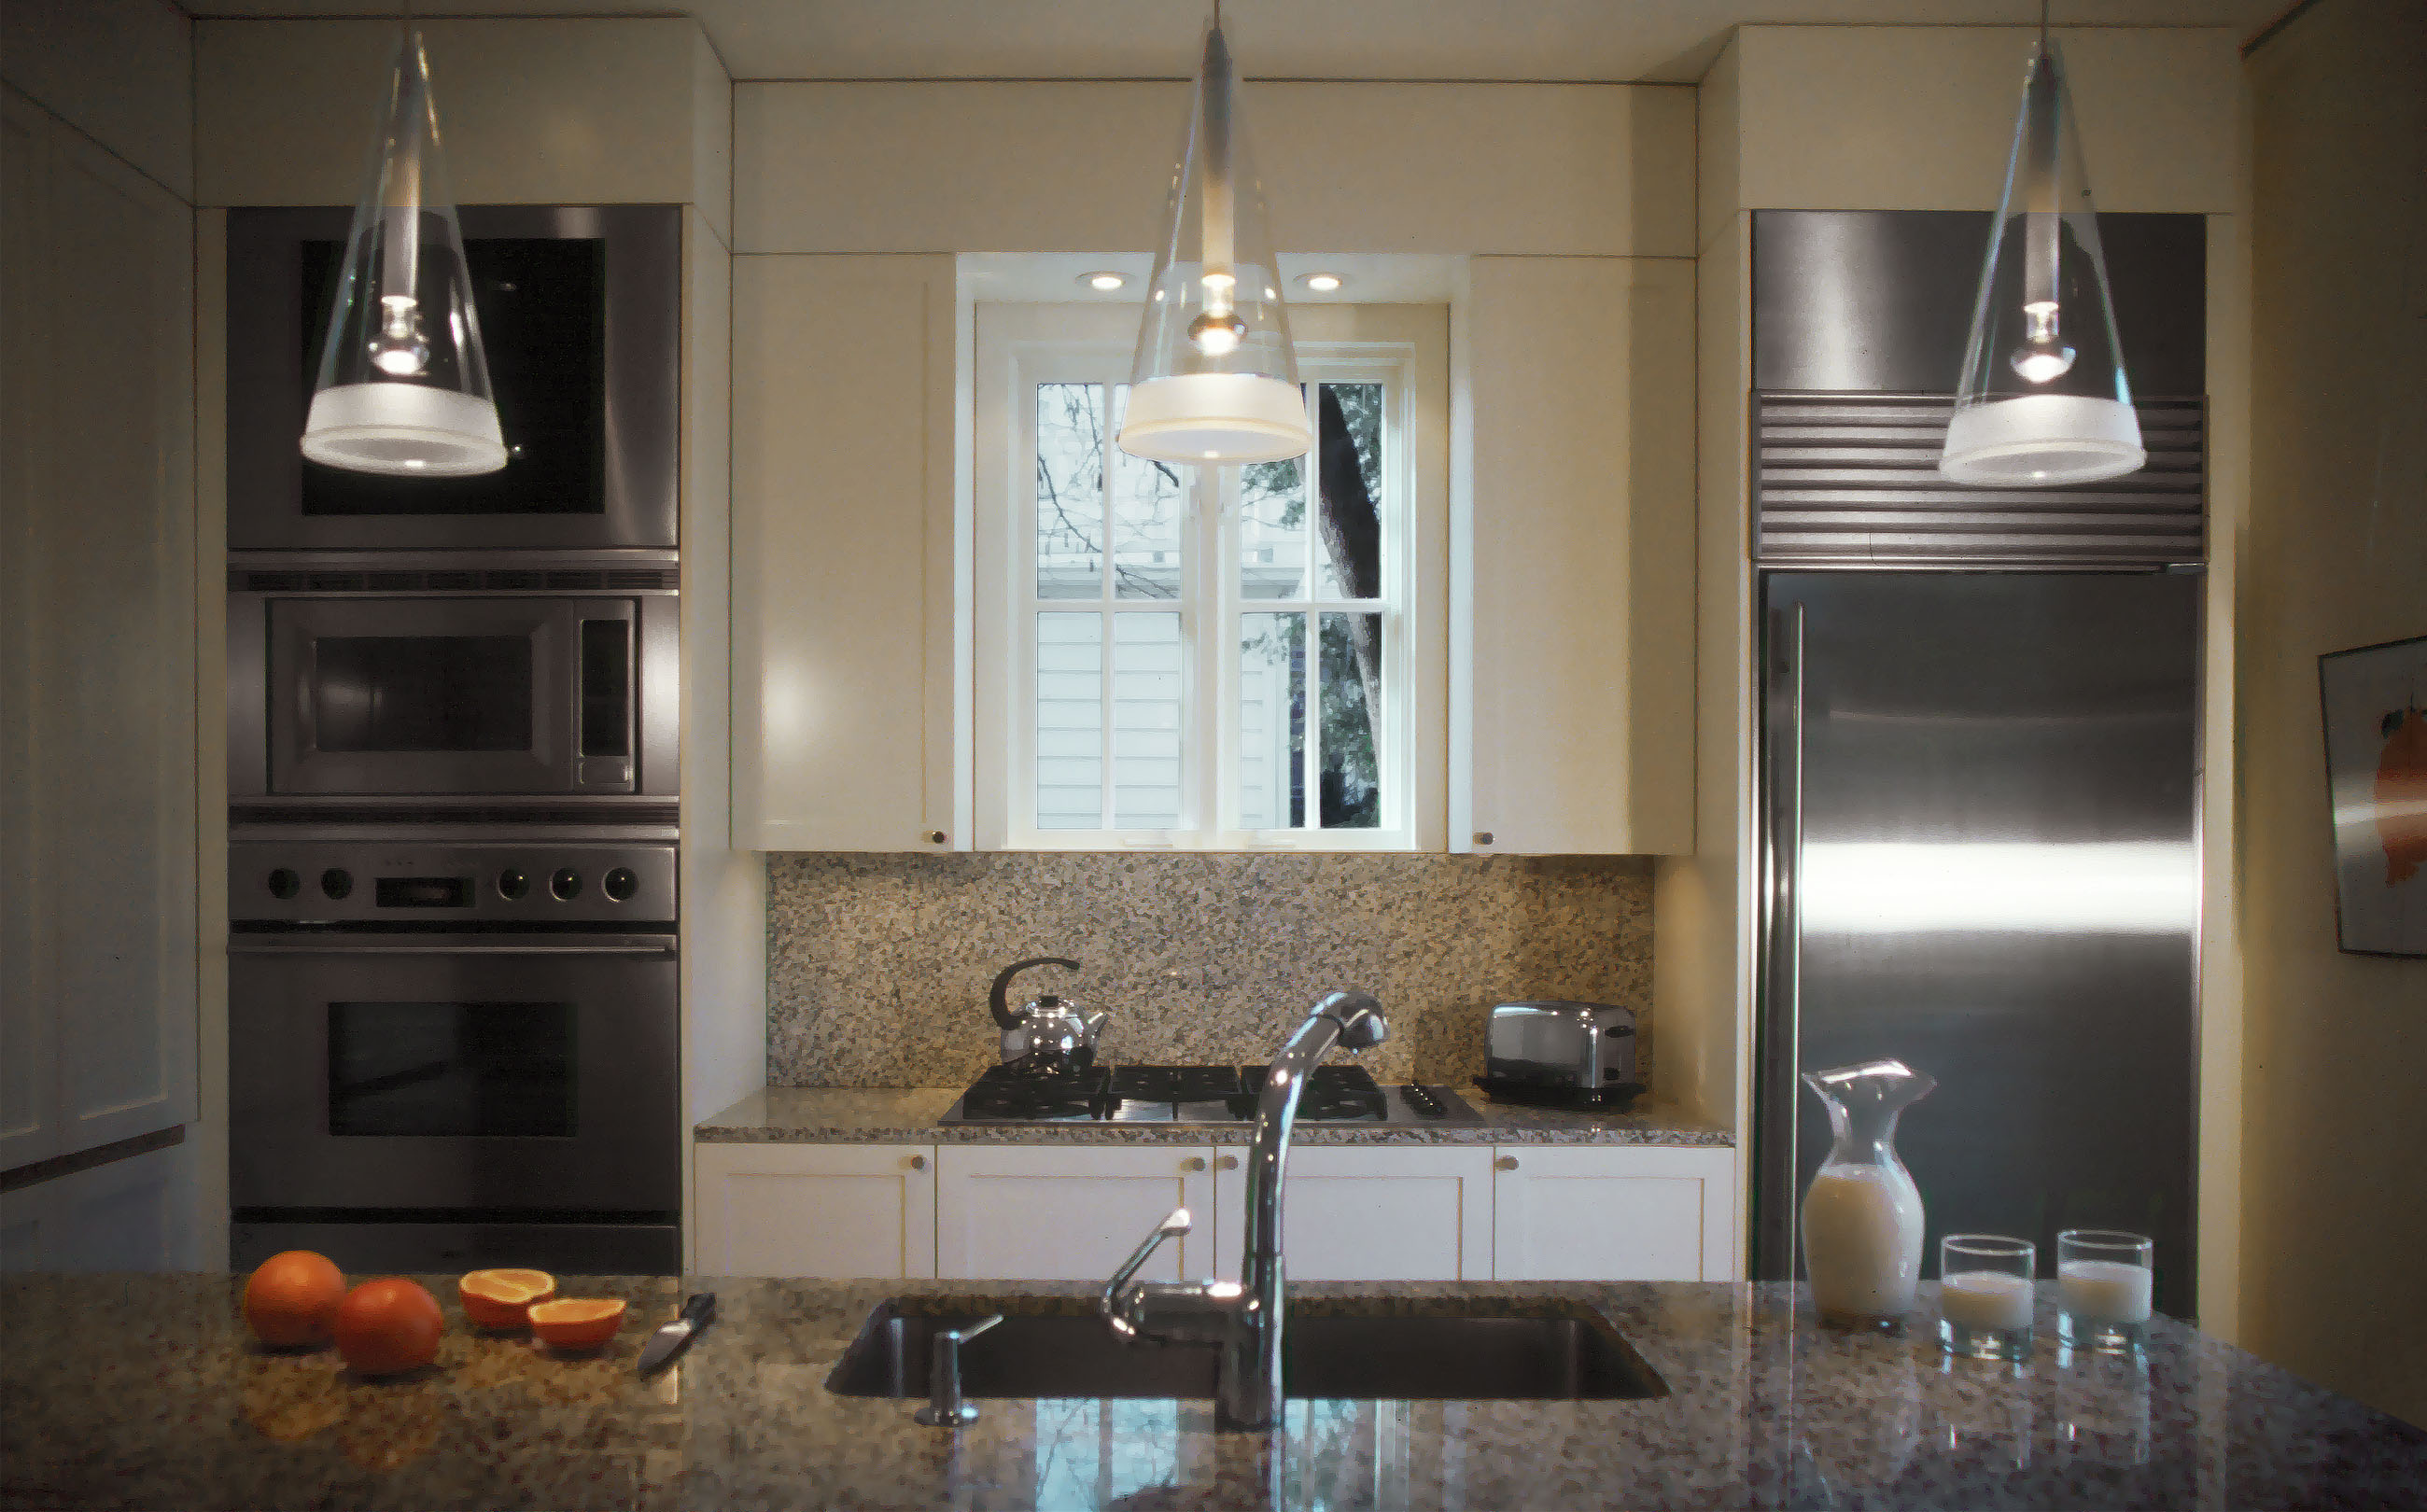 South Observatory Drive Kitchen, Nashville, TN, Tennessee, architecture, design, residential, renovation, interior photos, exterior photos